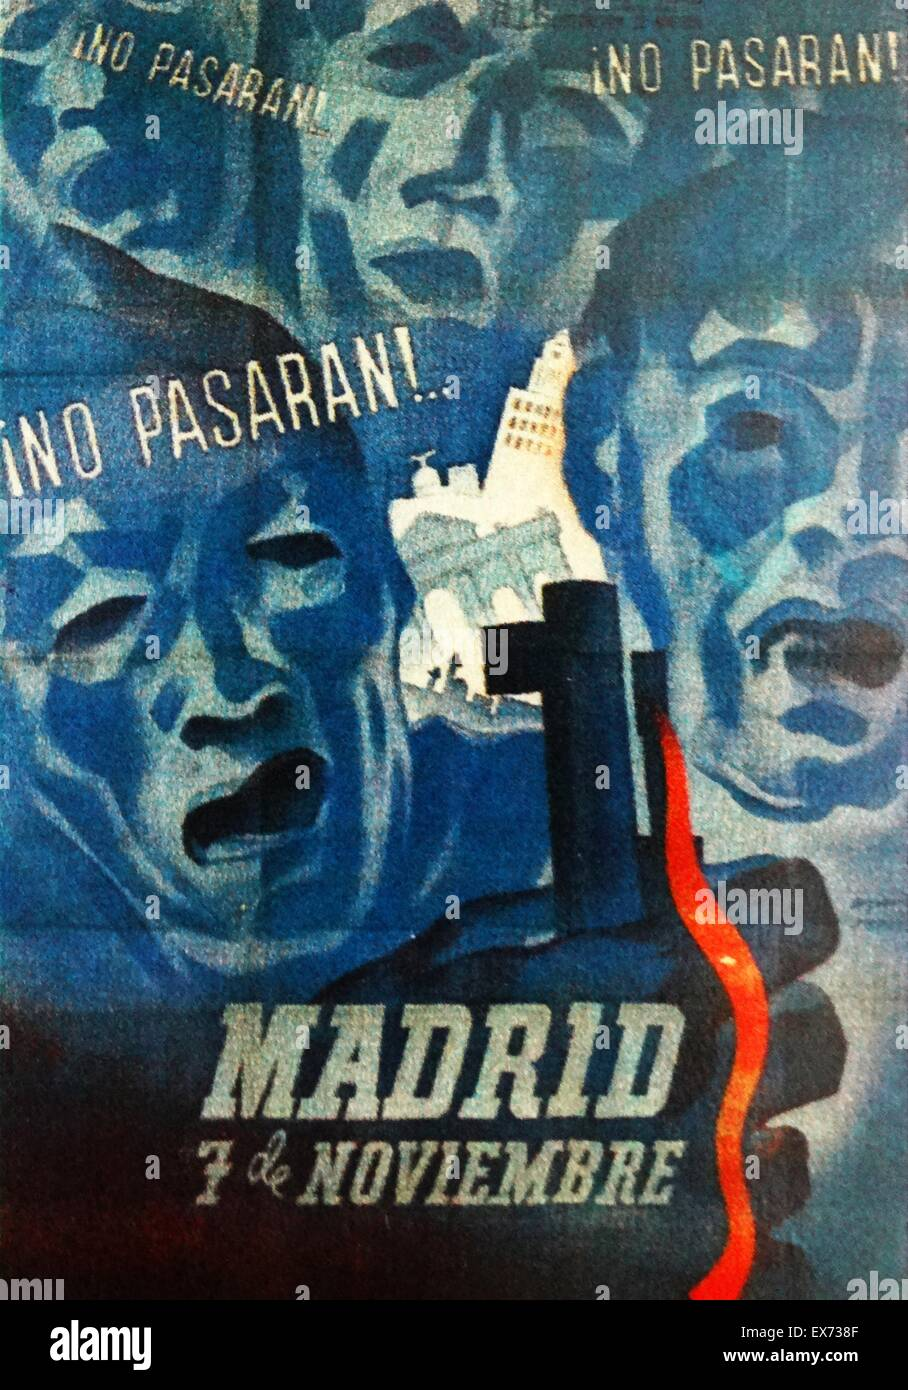 no pasaran spanish republican poster they shall not pass was